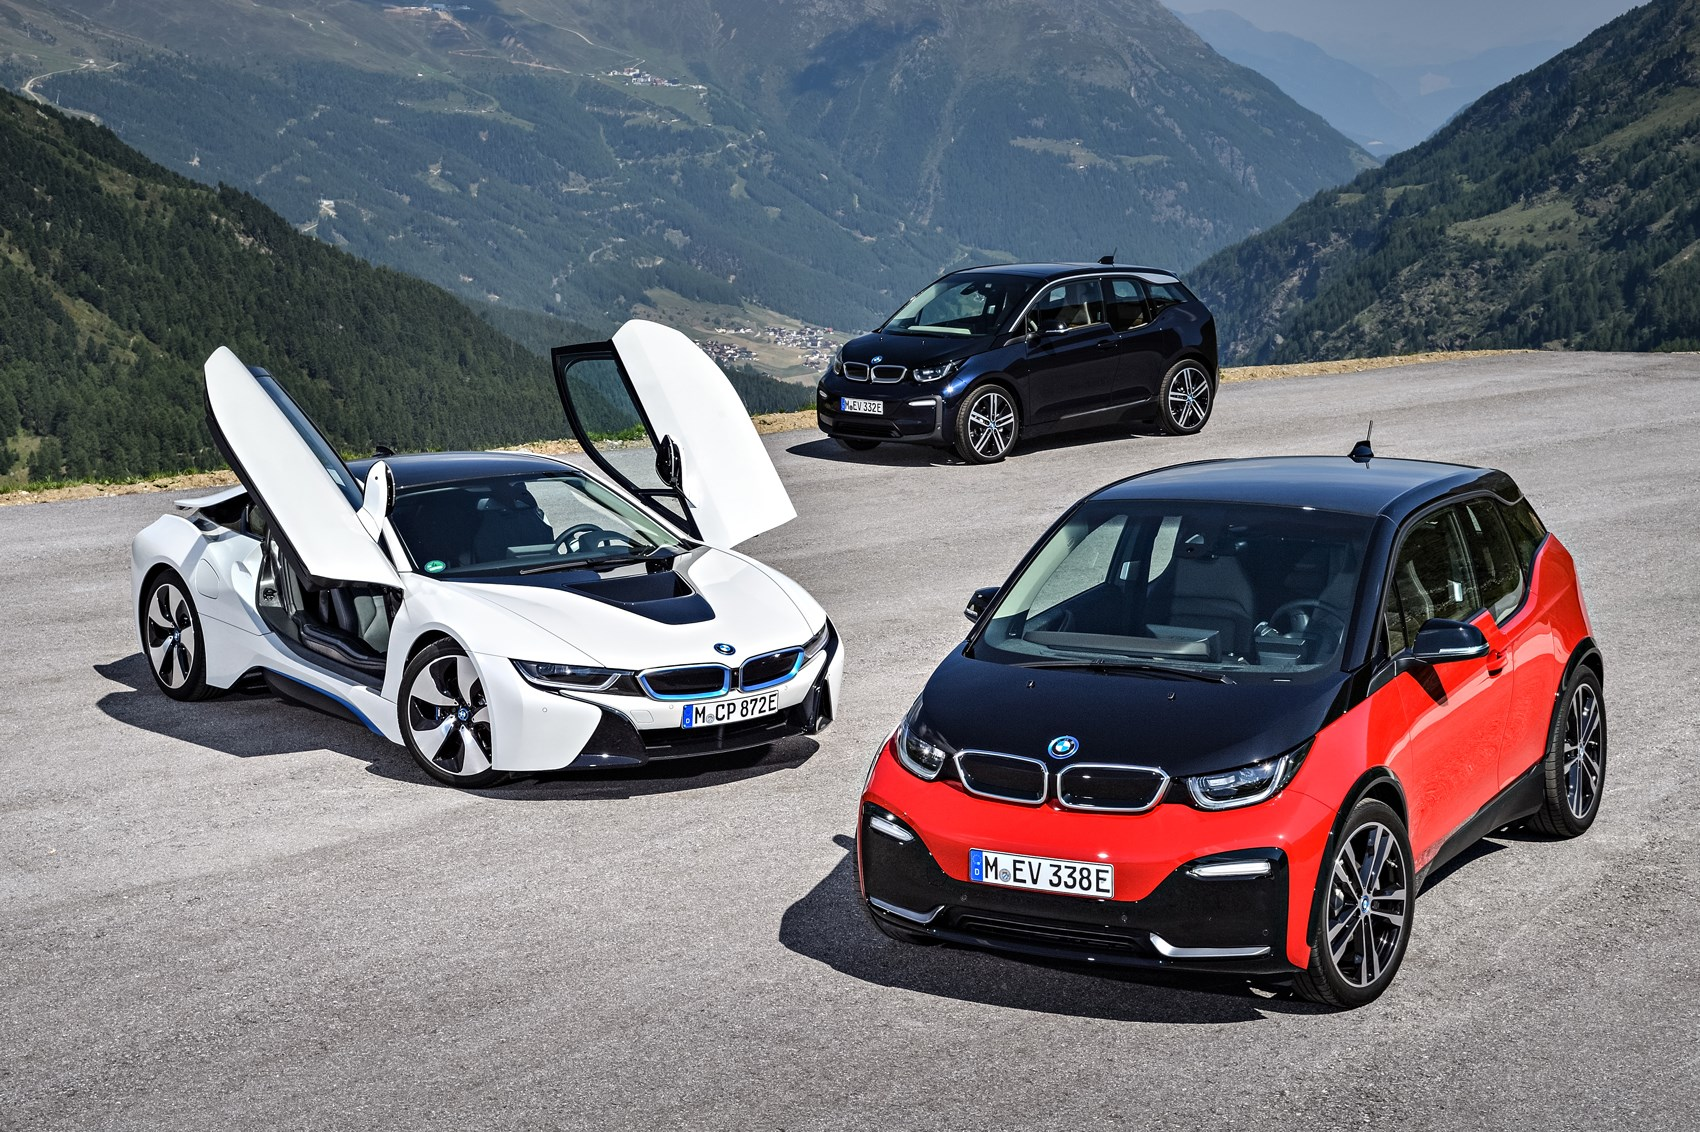 Bmw Electric Munich S Present And Upcoming Evs In Detail Car Magazine